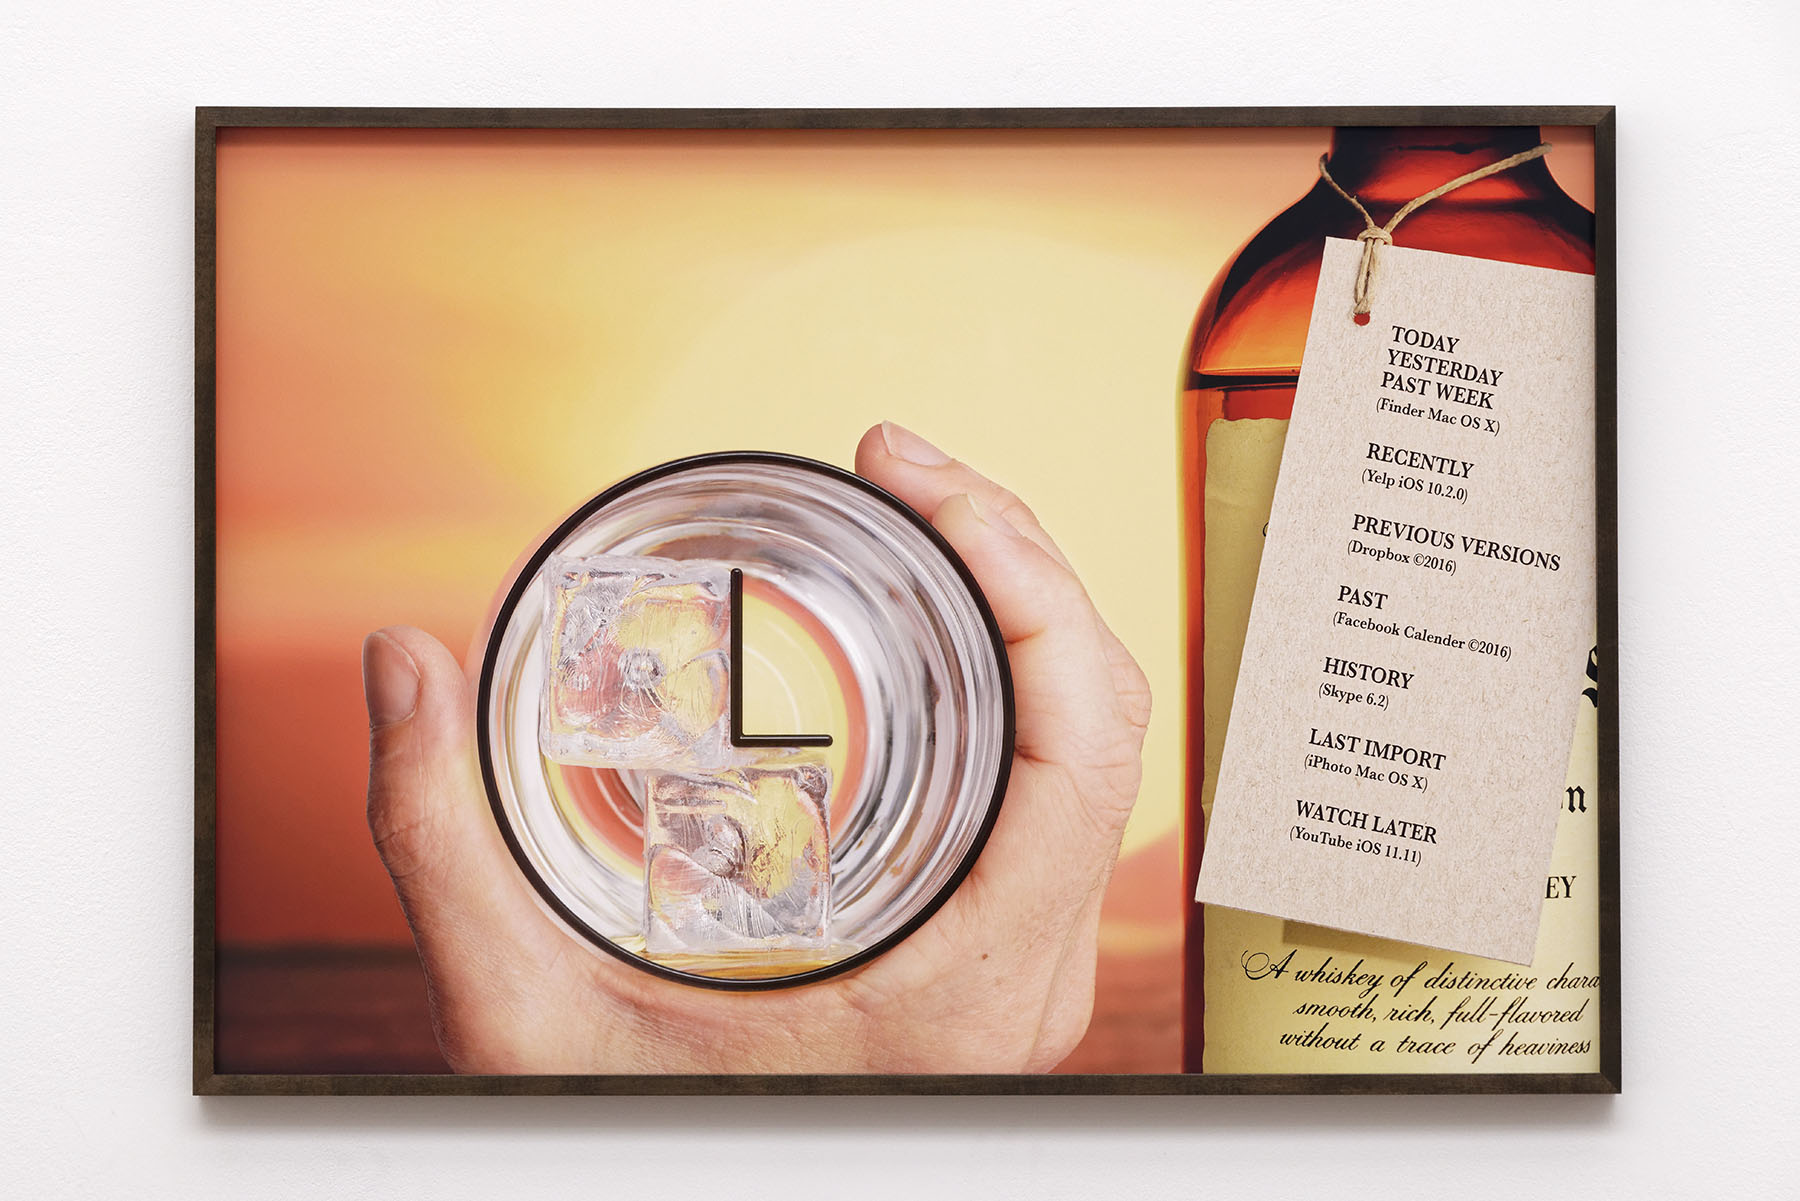 Natalie Czech, CLOCK / SEAGRAM'S, 2016. Courtesy l'artiste, Capitain Petzel, Berlin et Kadel Willborn, Düsseldorf. Photographie Aurélien Mole